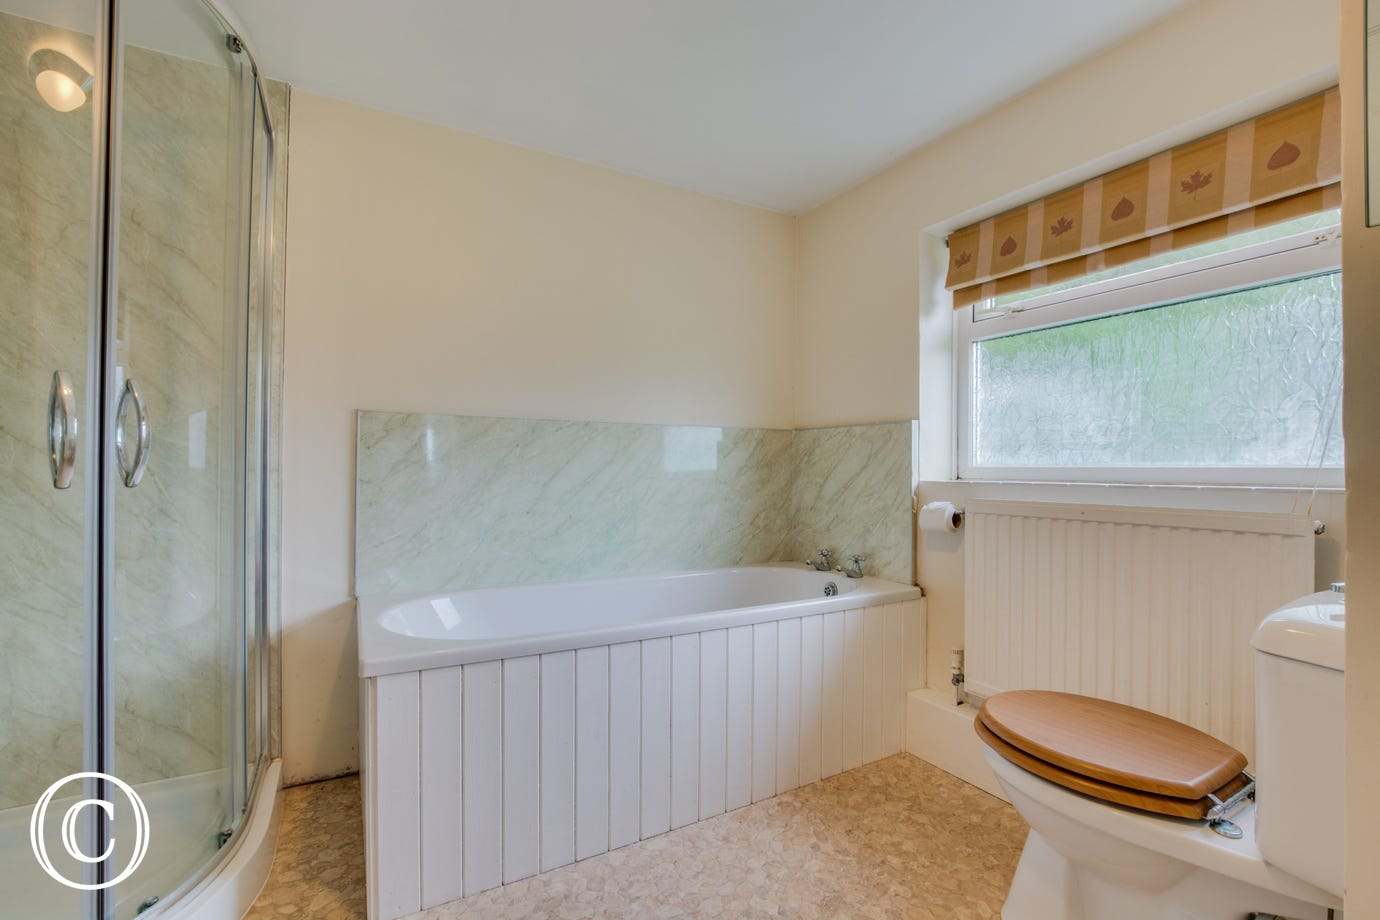 Holiday accommodation with family bathroom, bath and a separate shower cubicle.